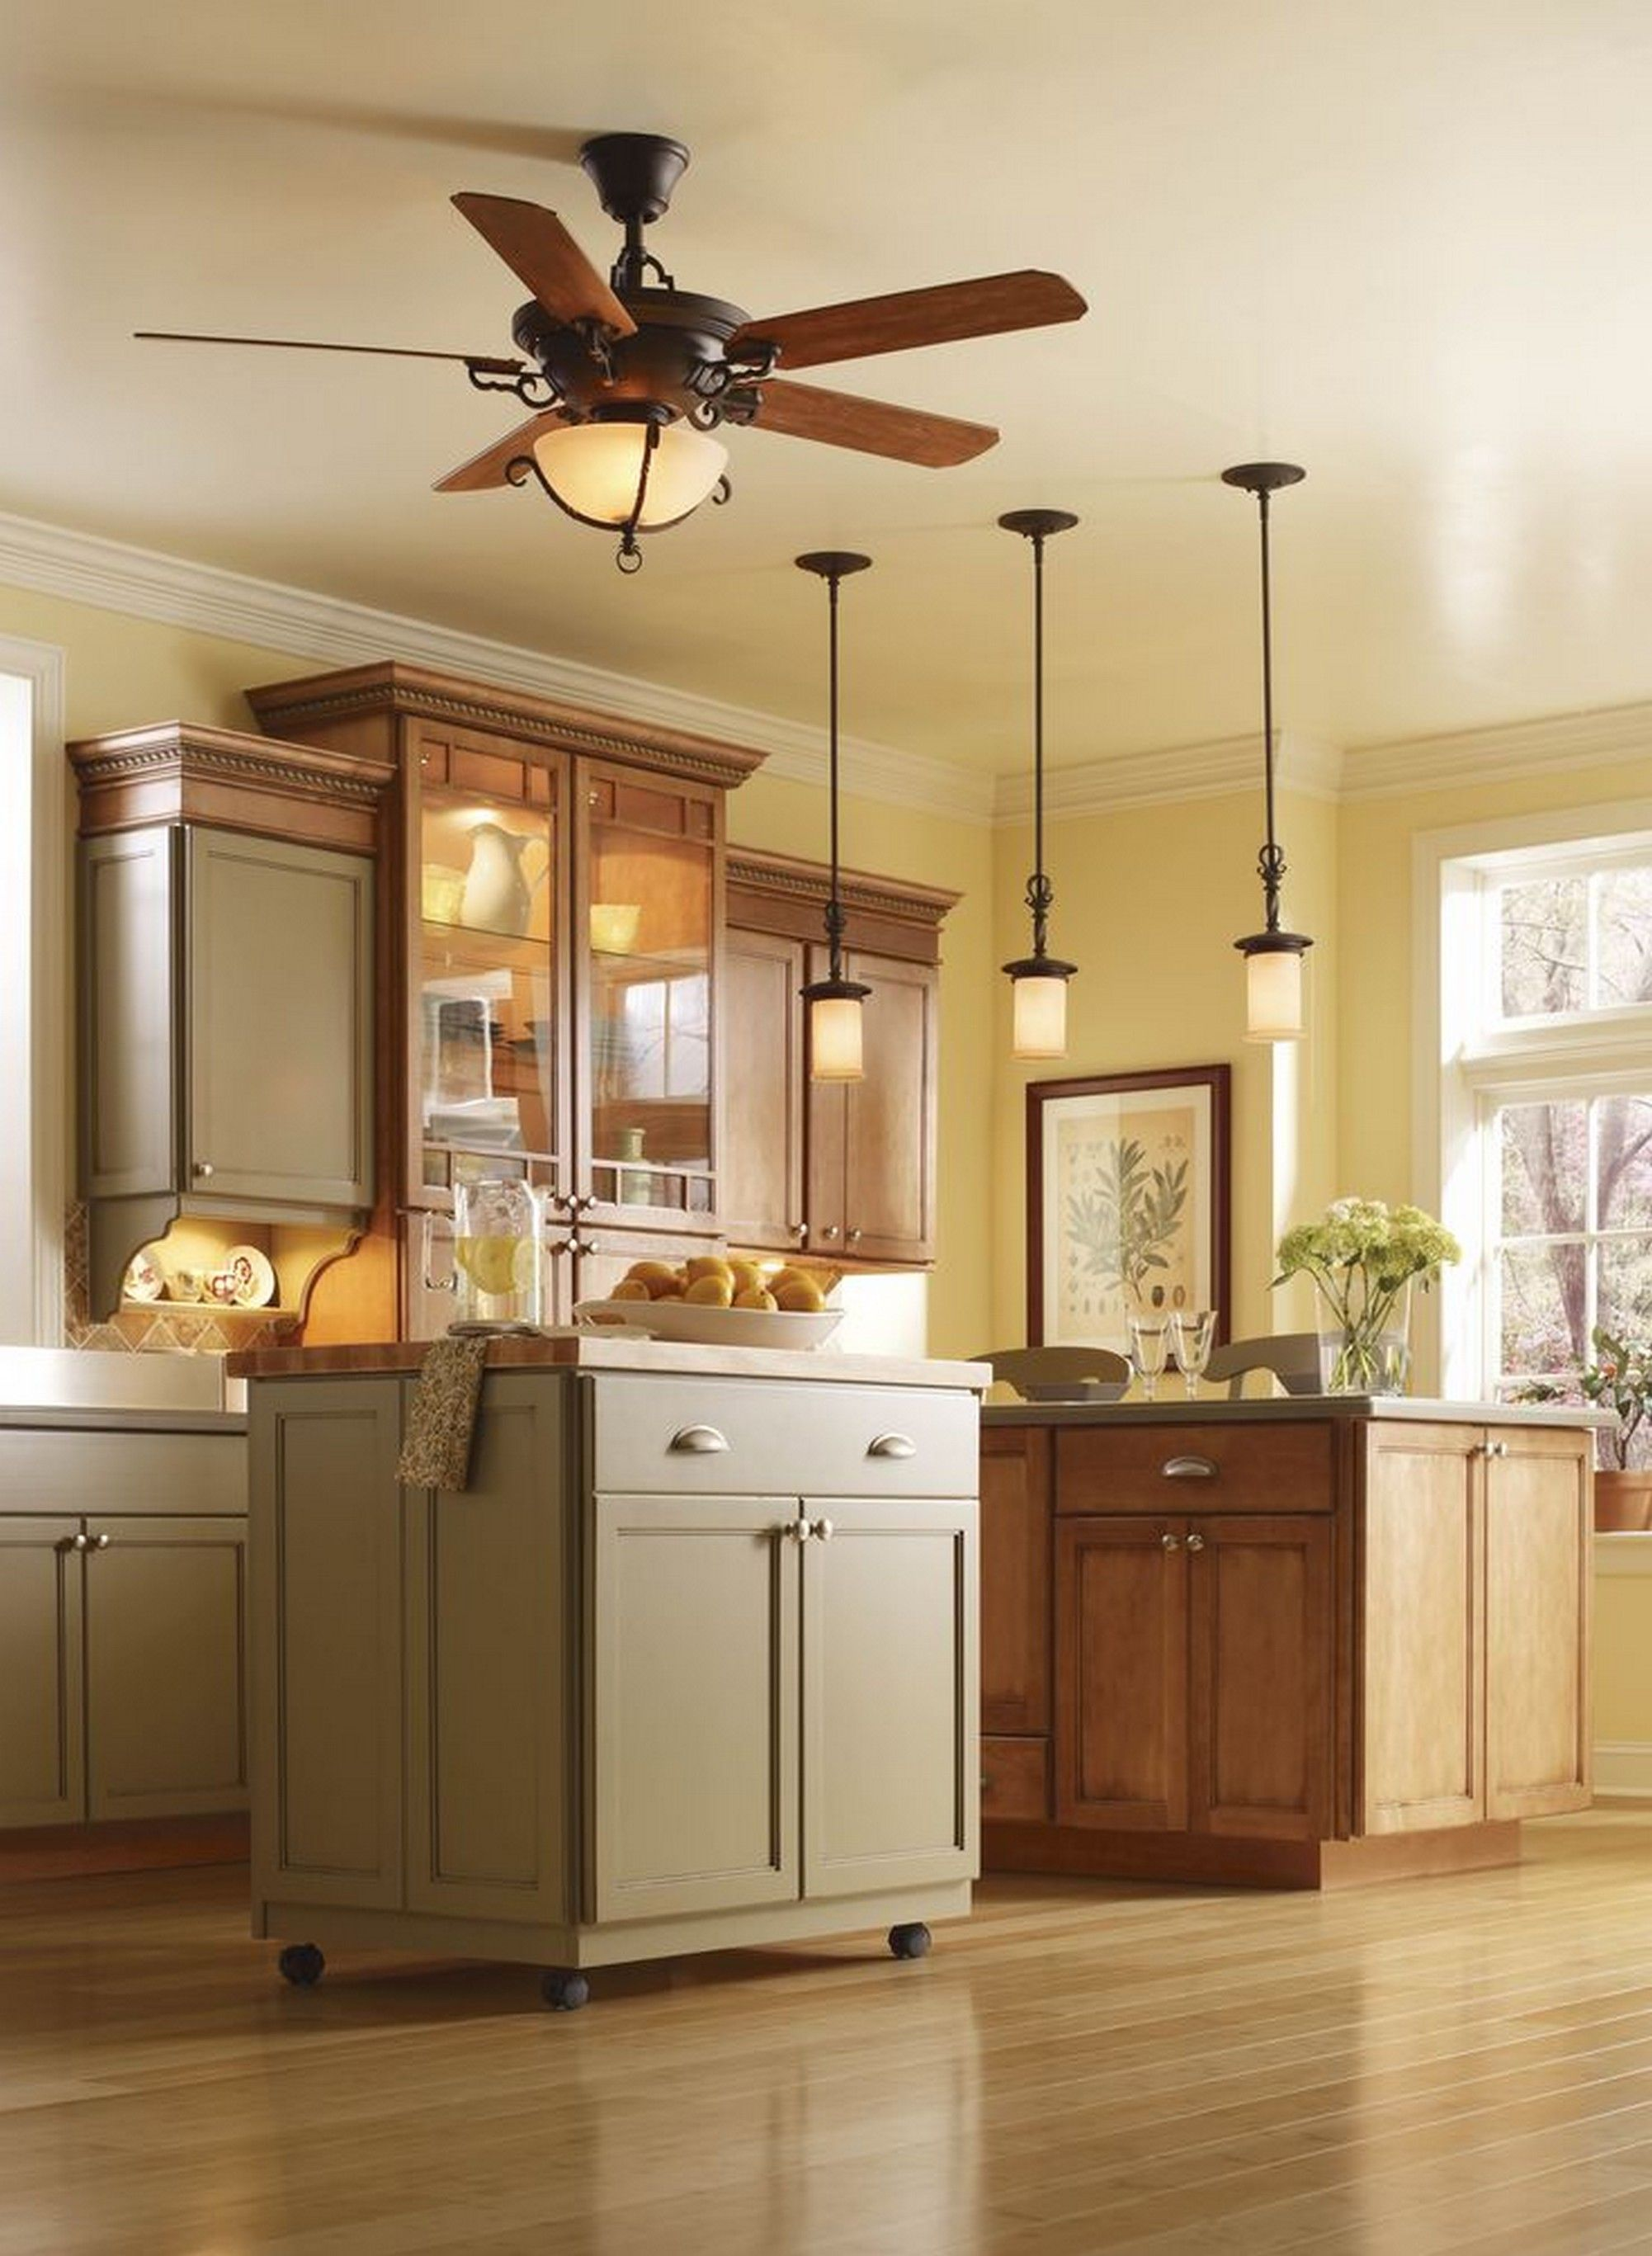 Small island under awesome kitchen ceiling lights with wooden small island under awesome kitchen ceiling lights with wooden ceiling fan on cream ceiling aloadofball Images